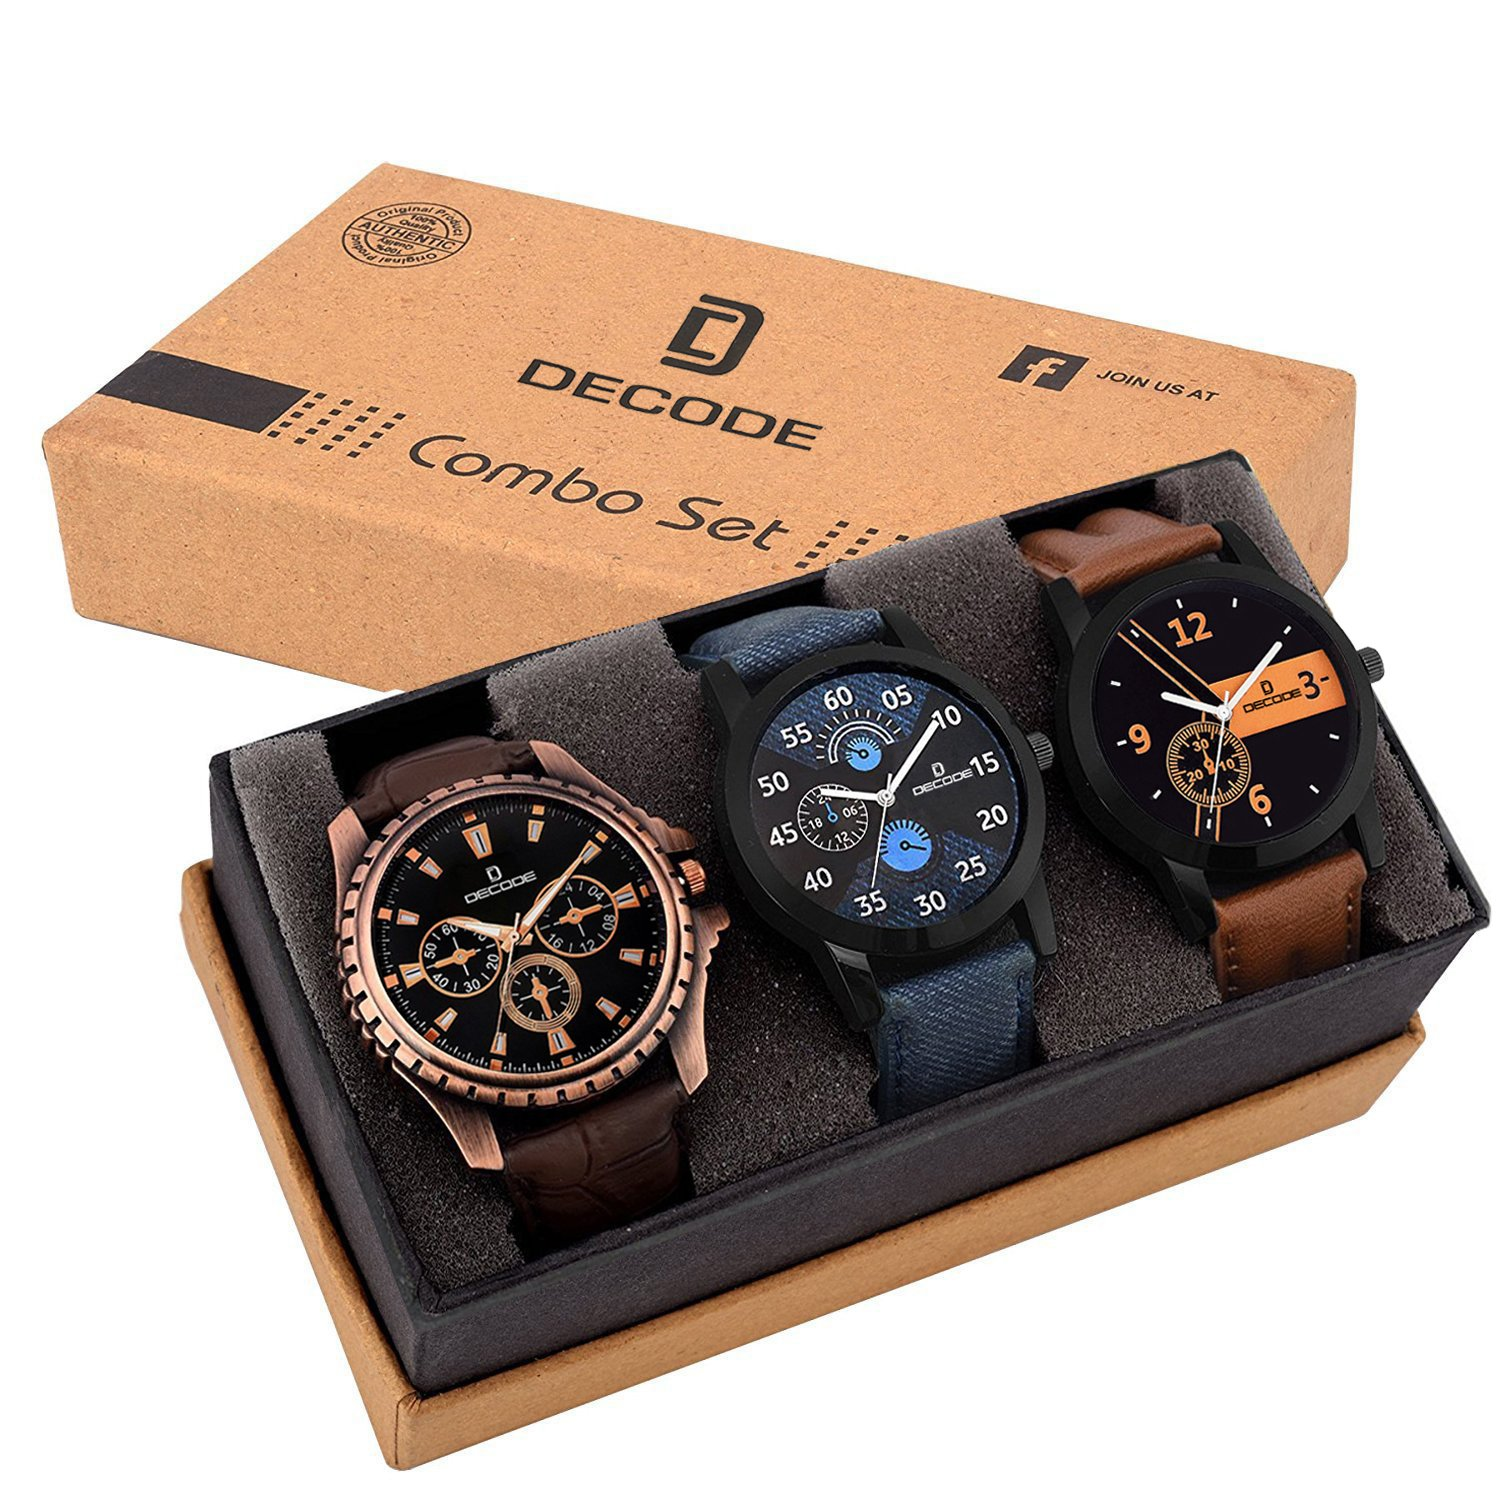 buy watches for men online at low prices in shop sports decode analogue multi colour dial boy s and men s watch combo of 3 exclusive watches